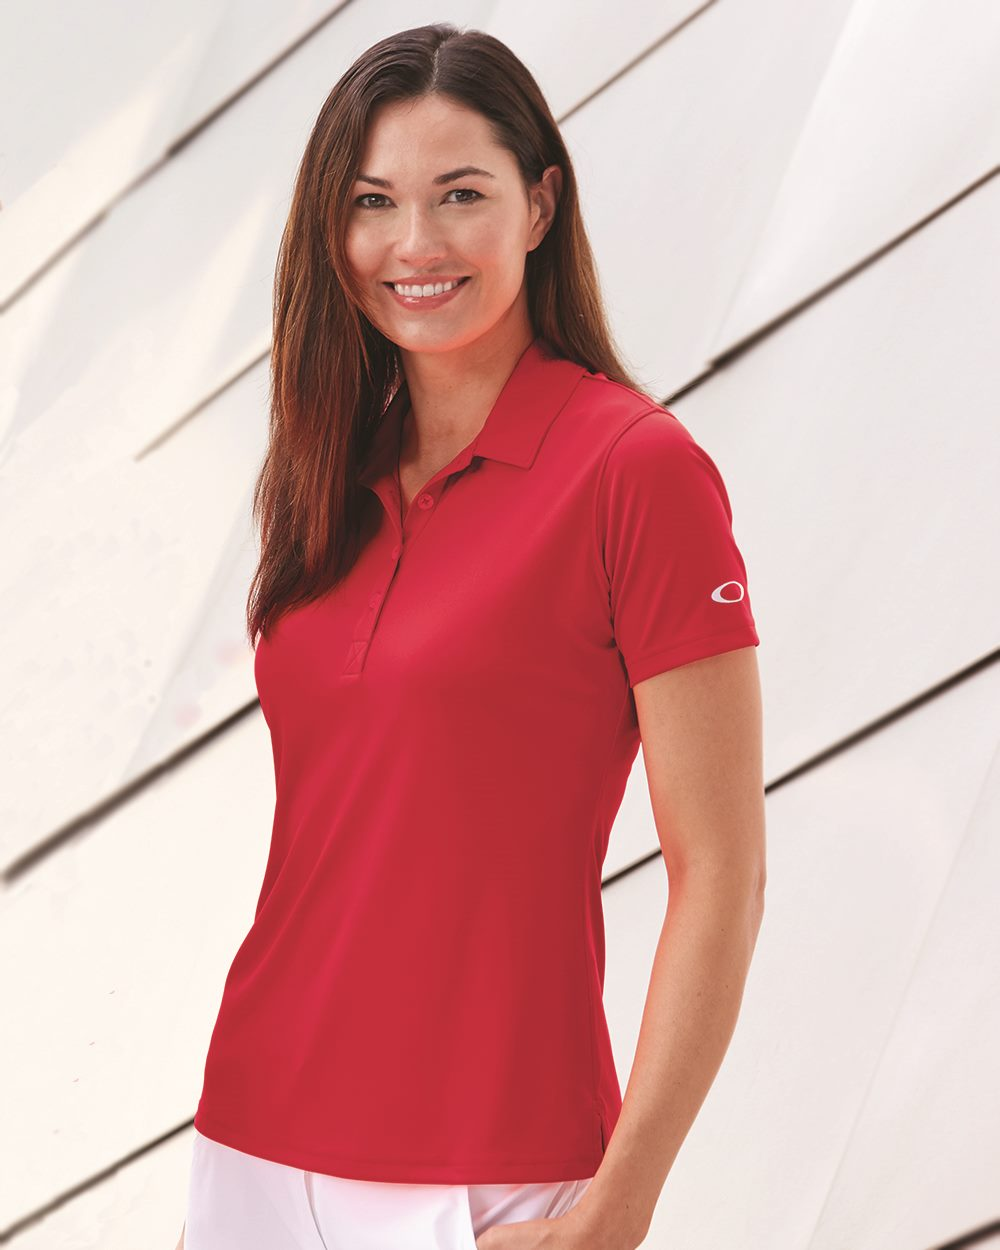 Oakley Women's Performance Sport Shirt